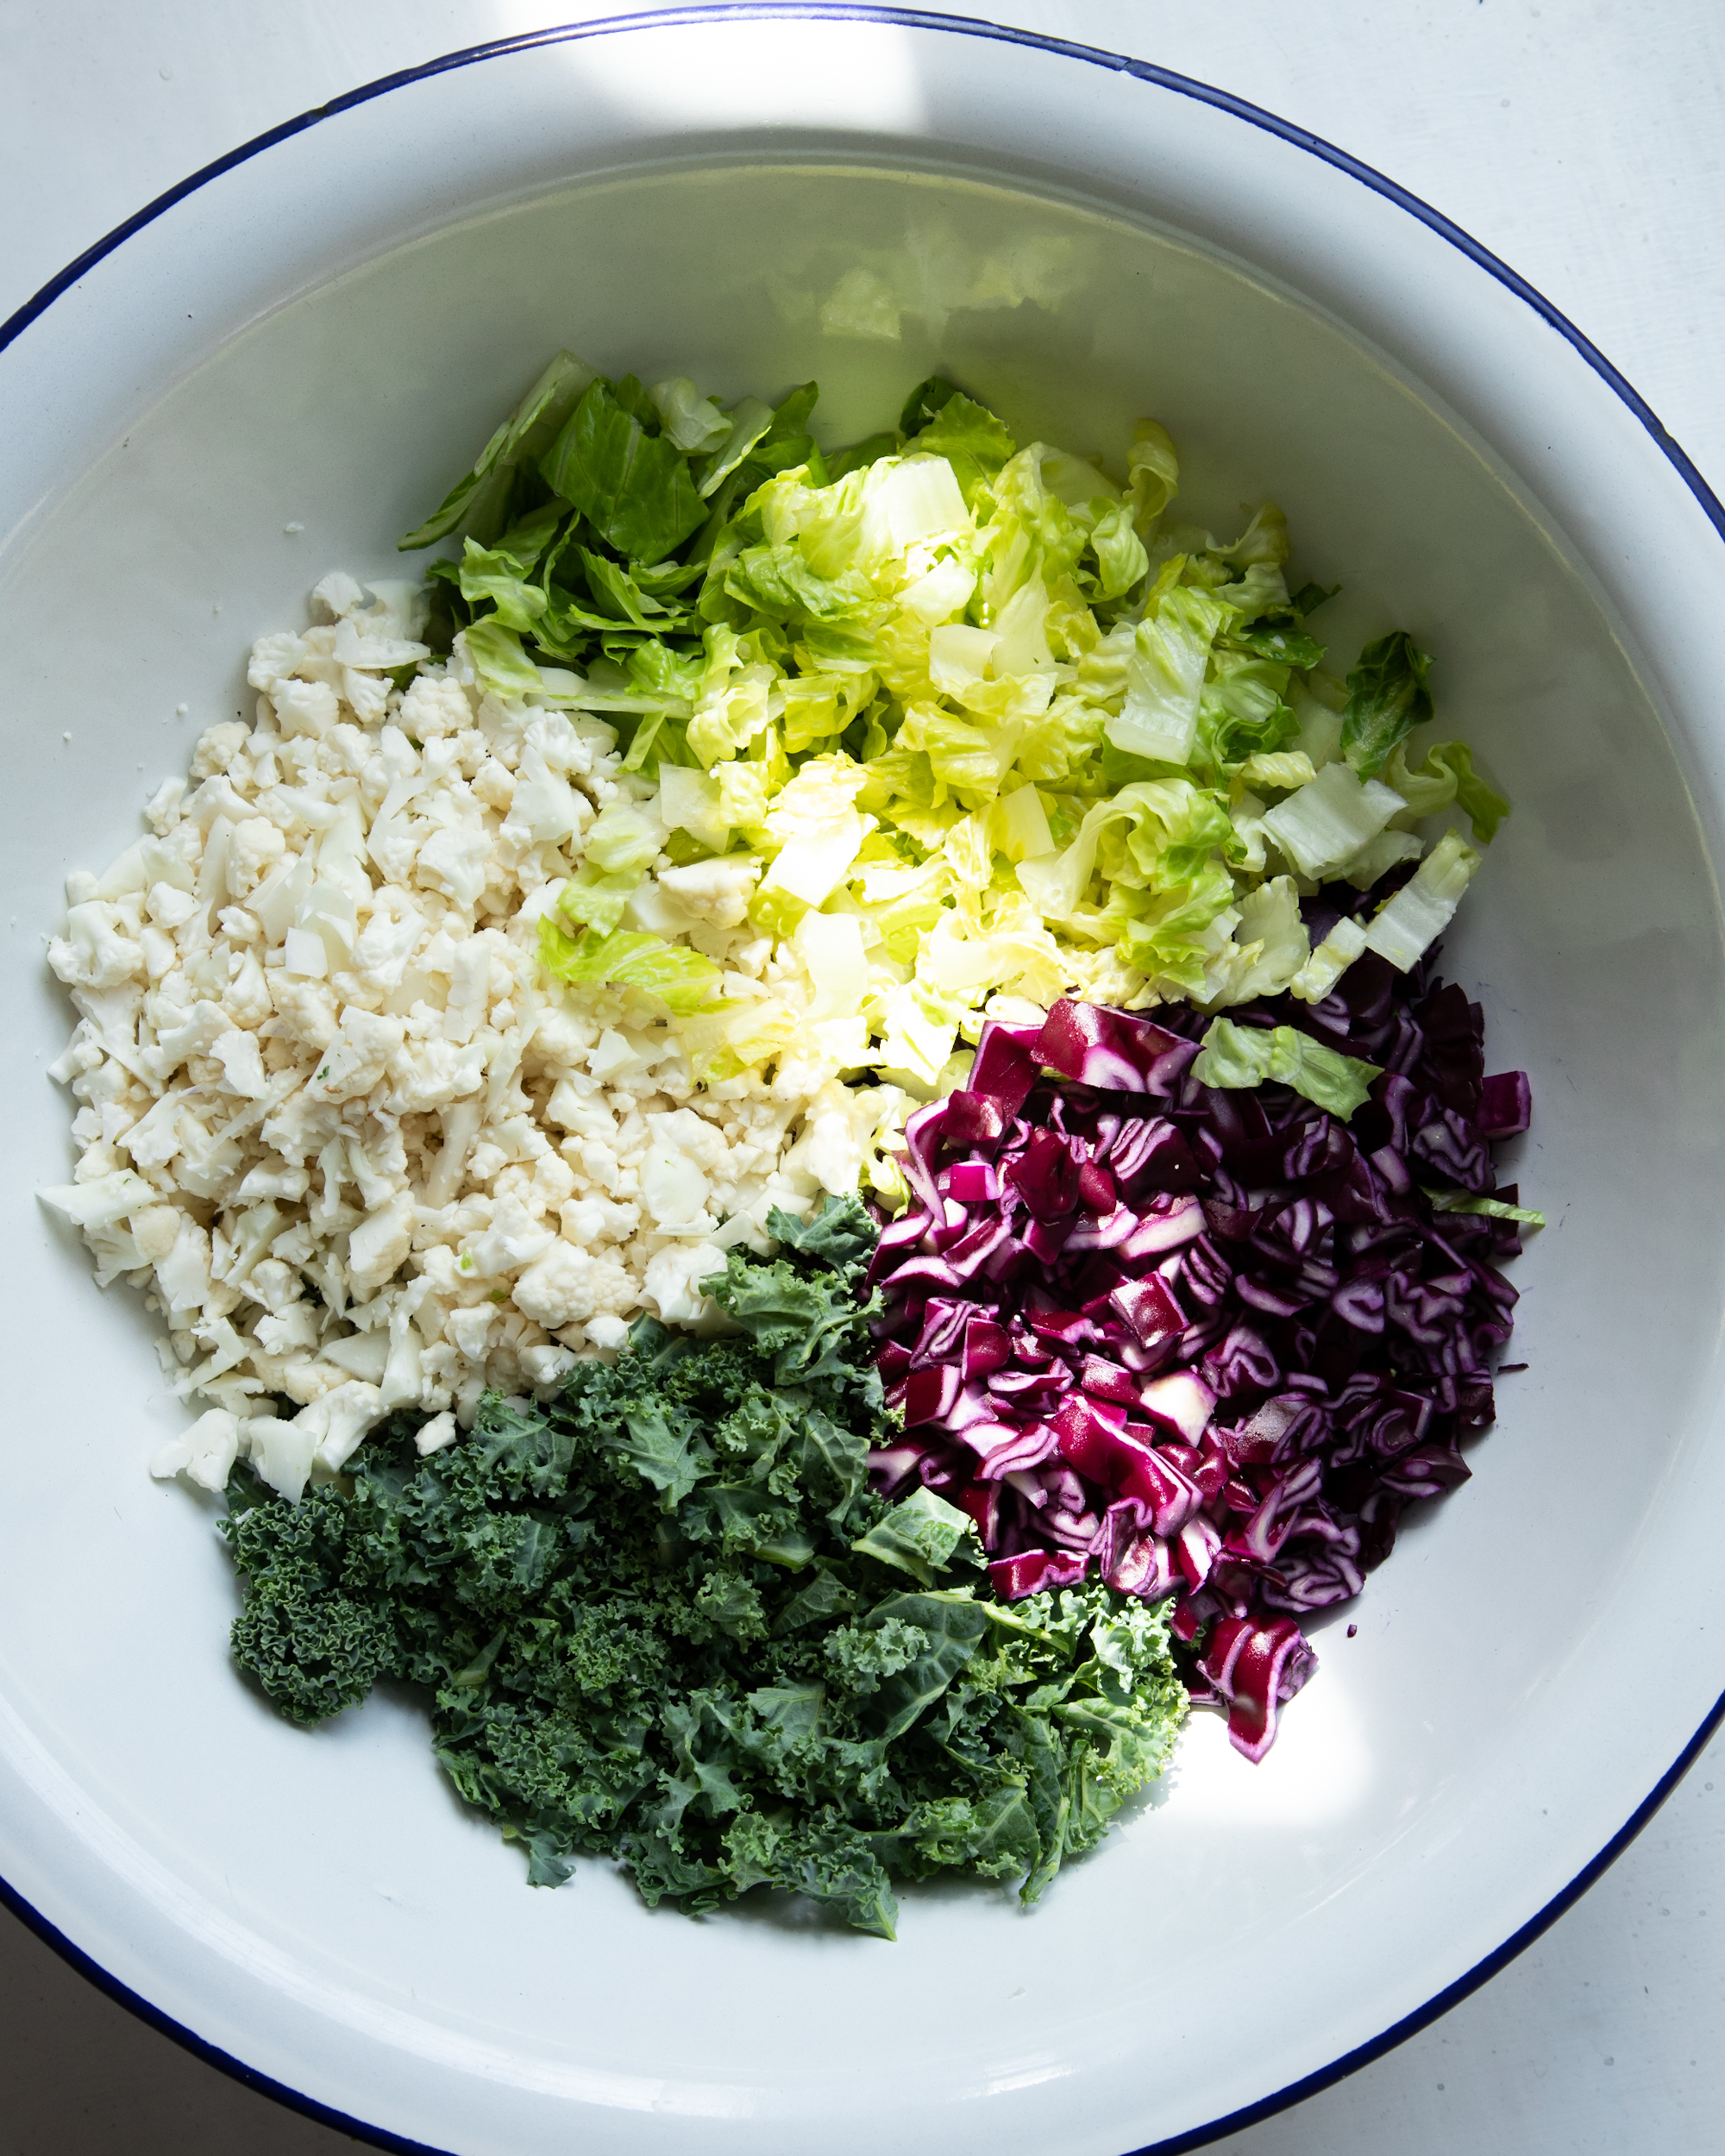 Image shows chopped vegetables in a large white bowl, before mixing into a salad with dressing.